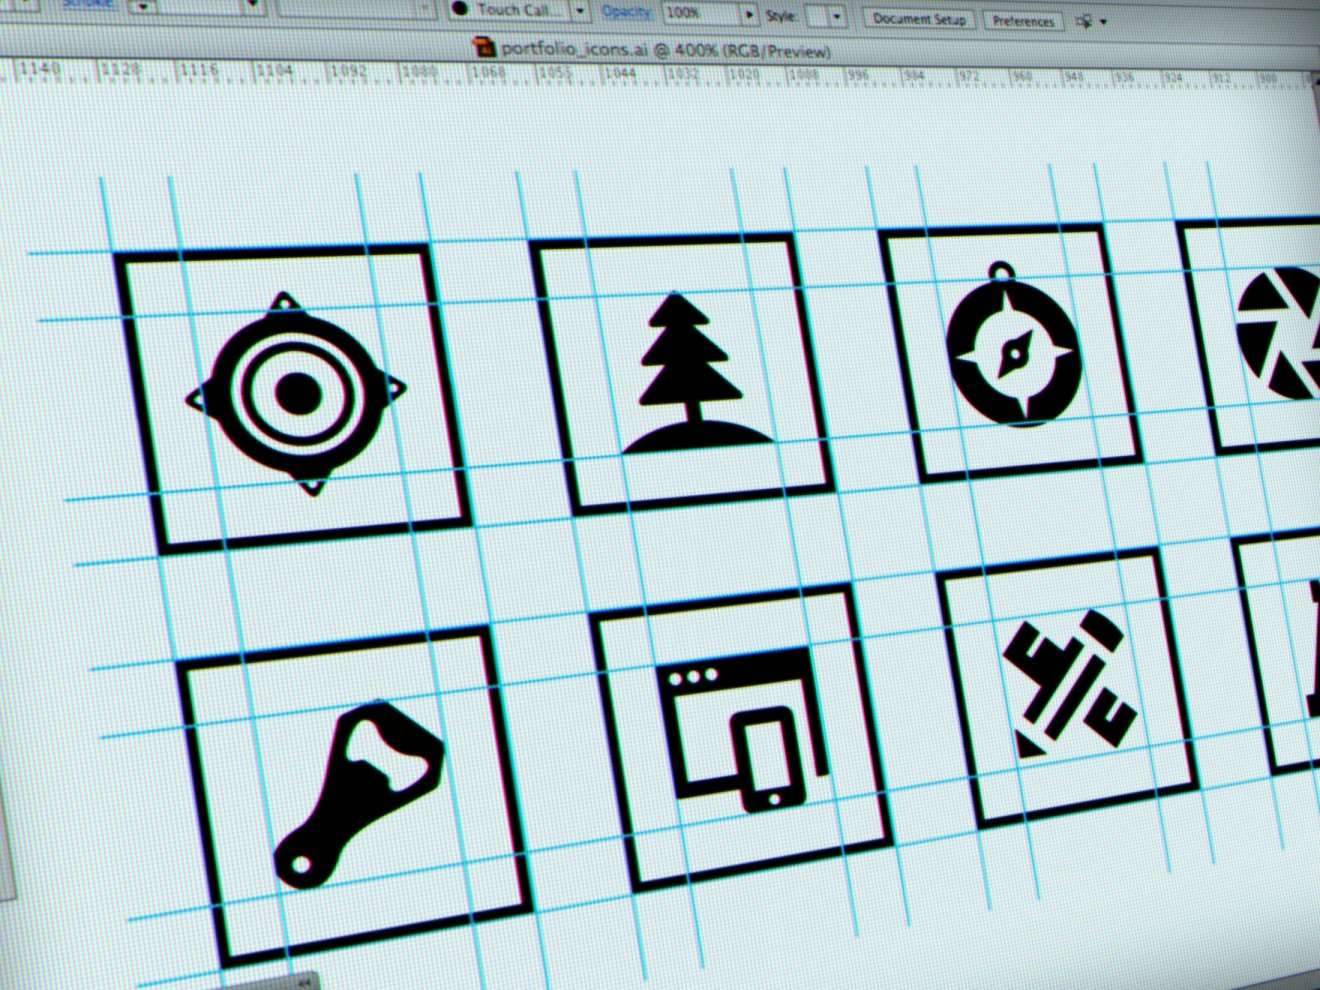 portfolio_icons_dribbble_04_screen